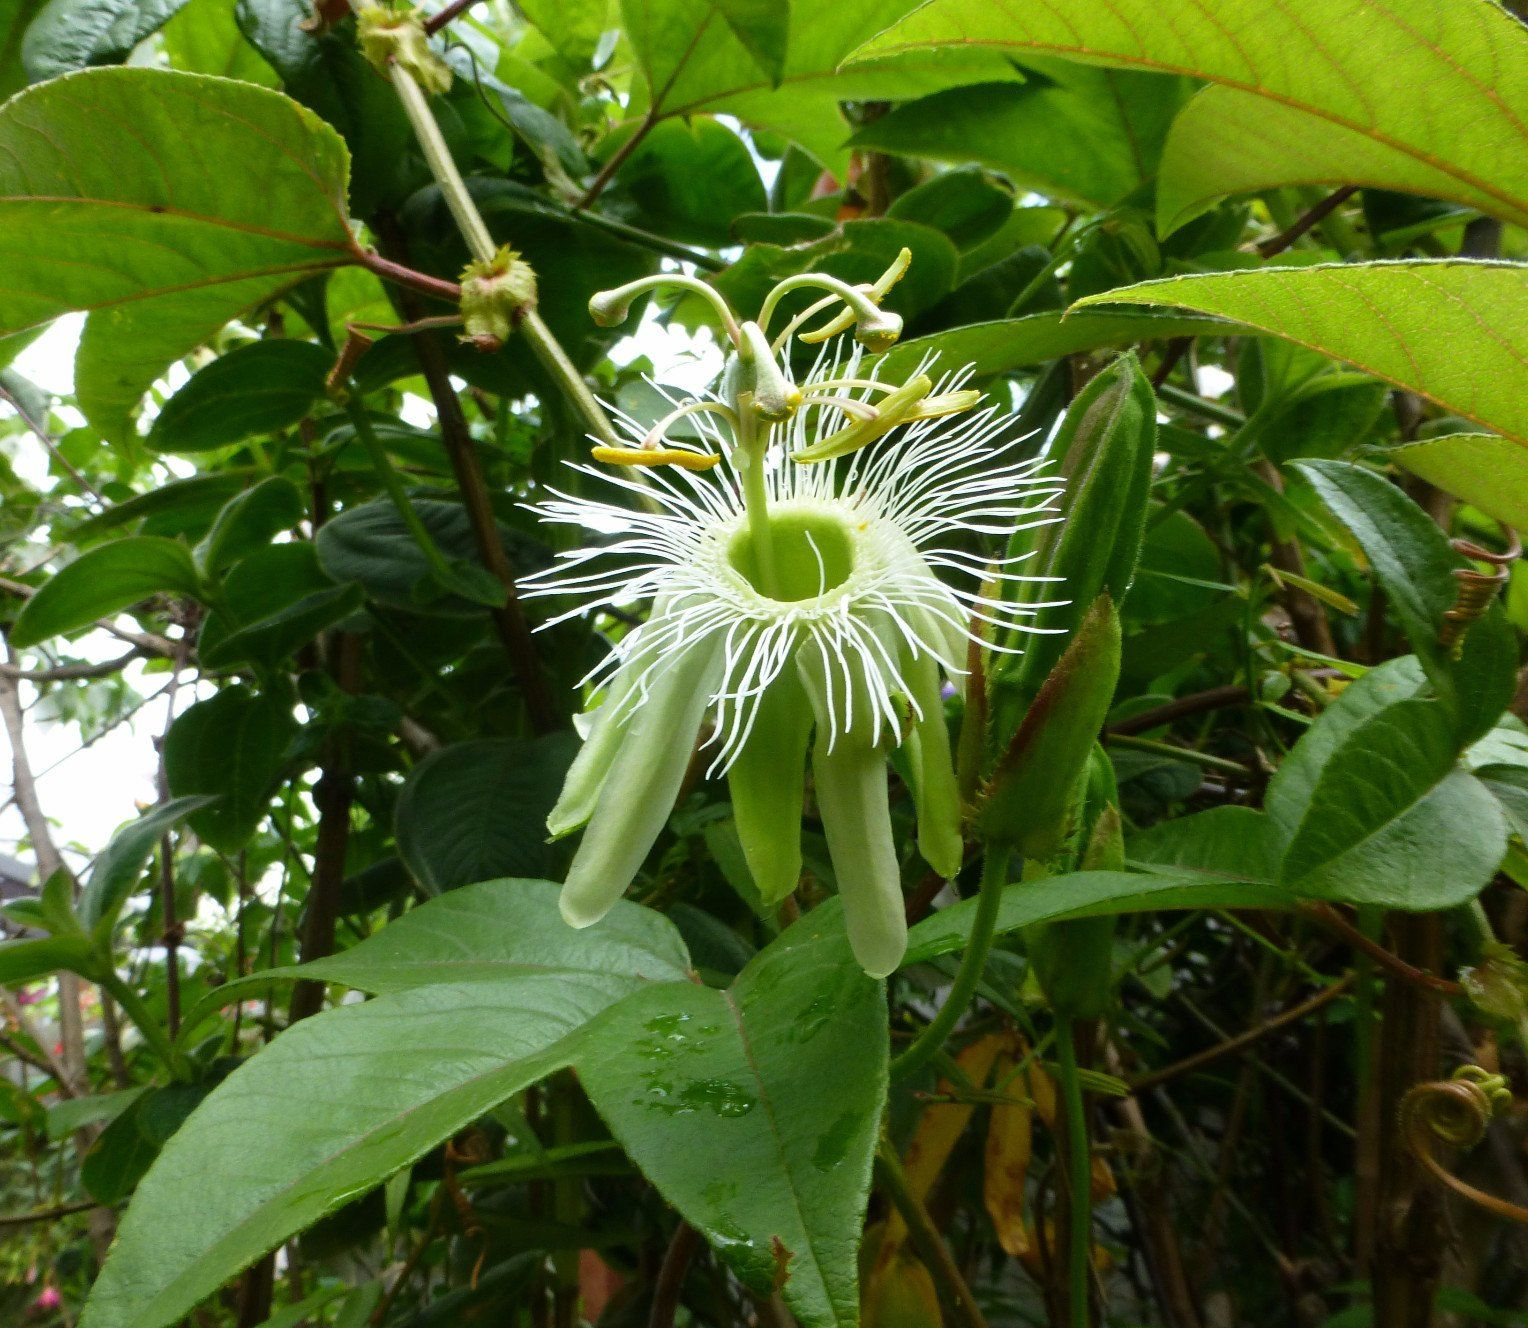 Growing And Using Passionflowers Aka Maypop Schneiderpeeps Passion Flower Growing Flowers Flowering Vines